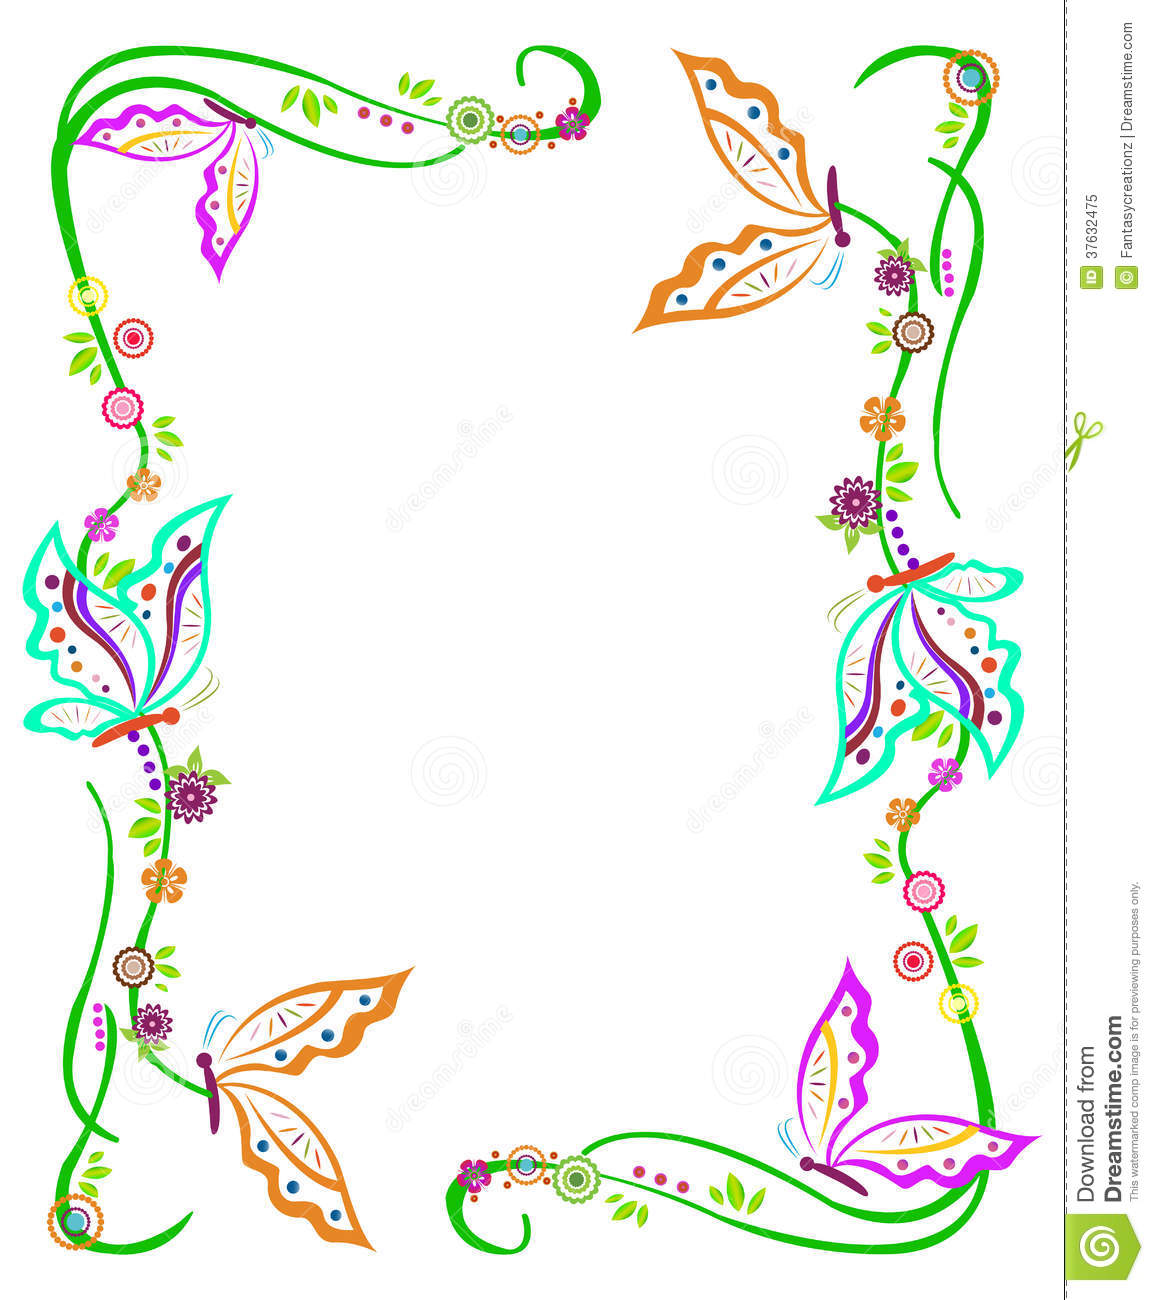 Download Butterfly Border Stock Vector Illustration Of Cliparts